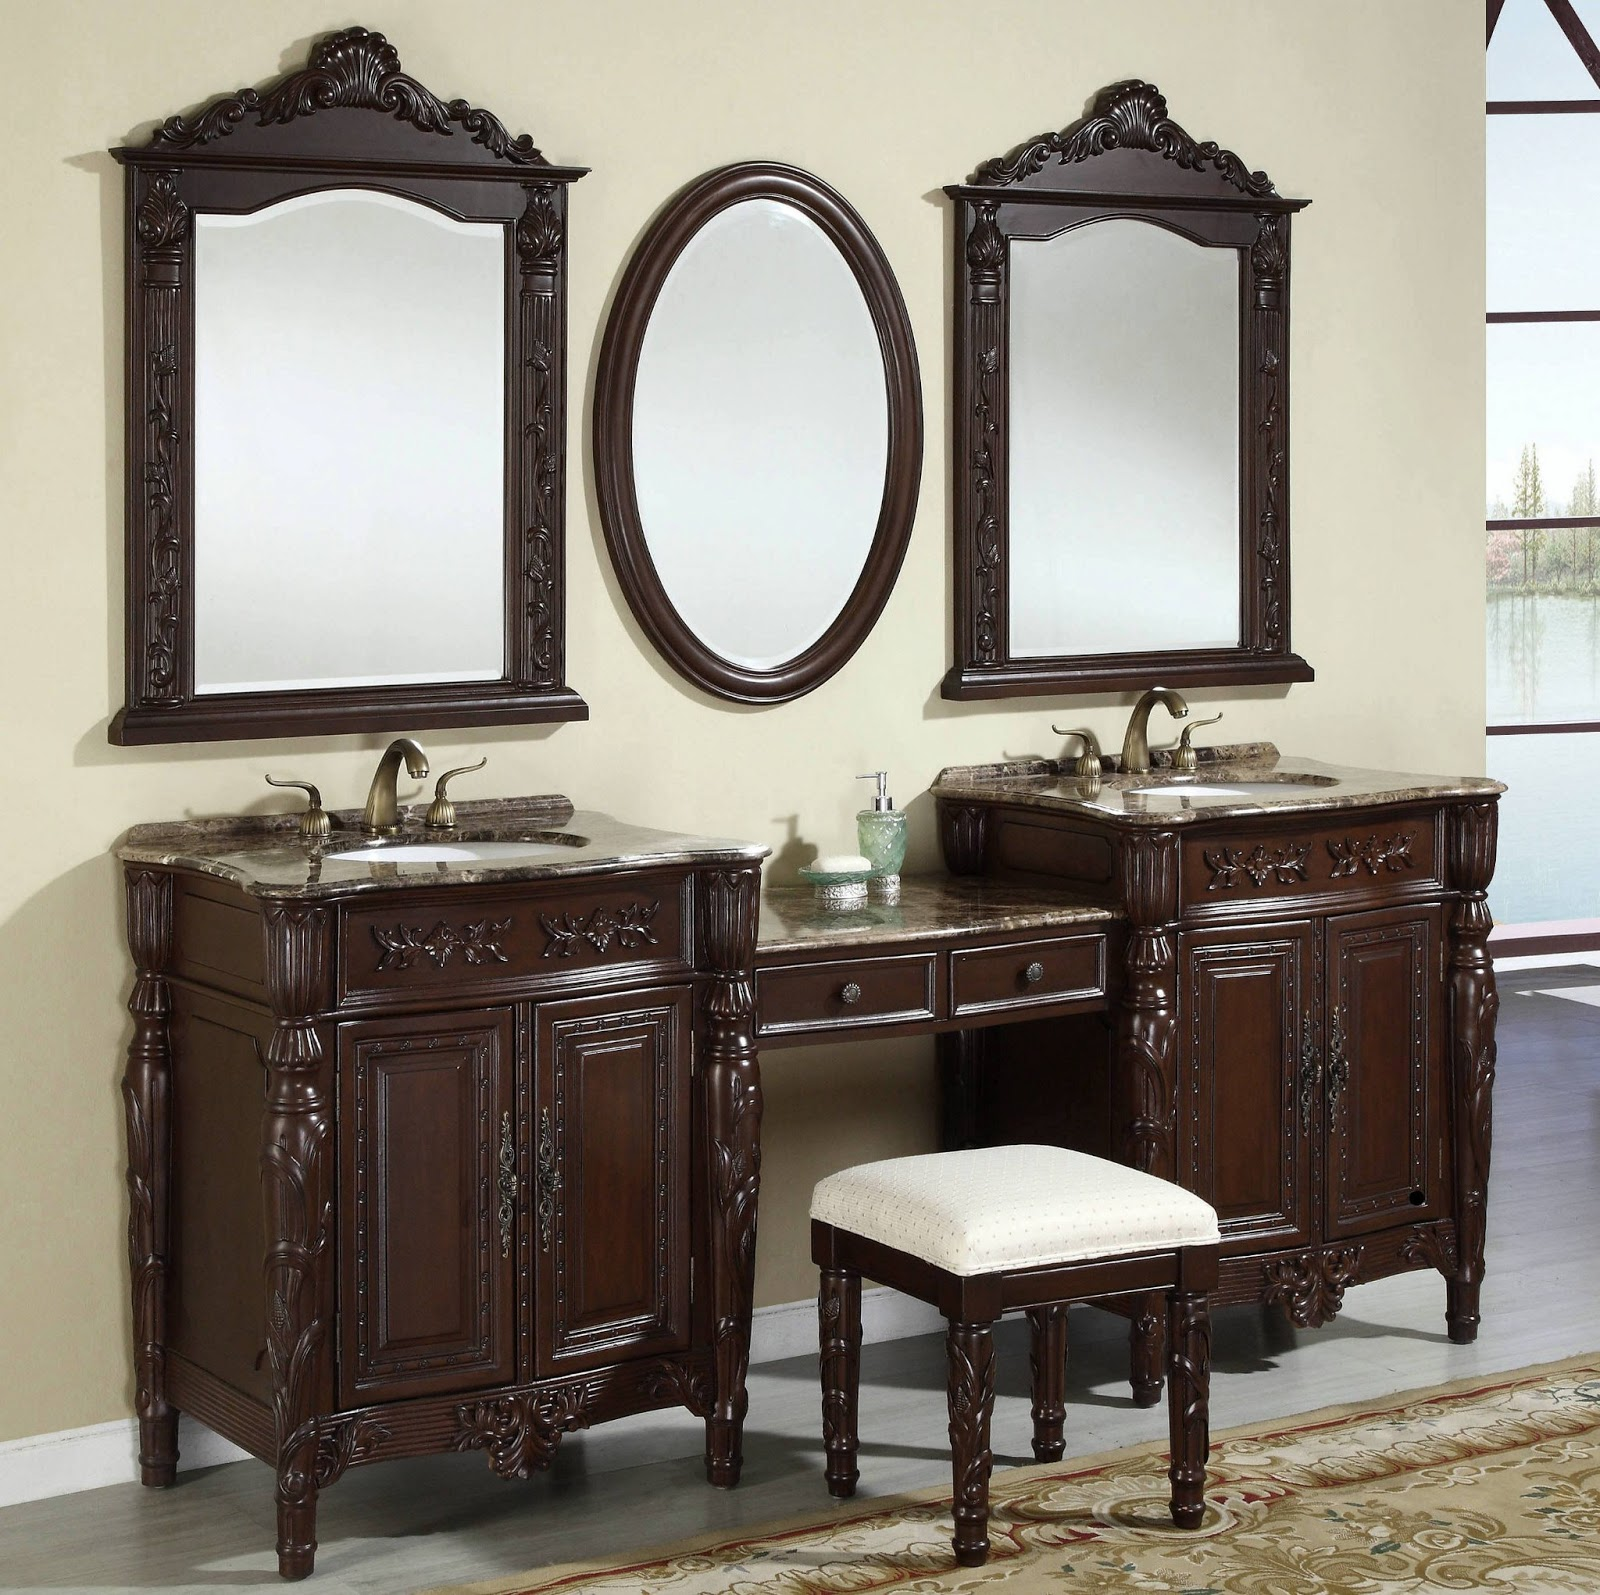 Bathroom Vanity Mirrors Models And Buying Tips Cabinets Vanities